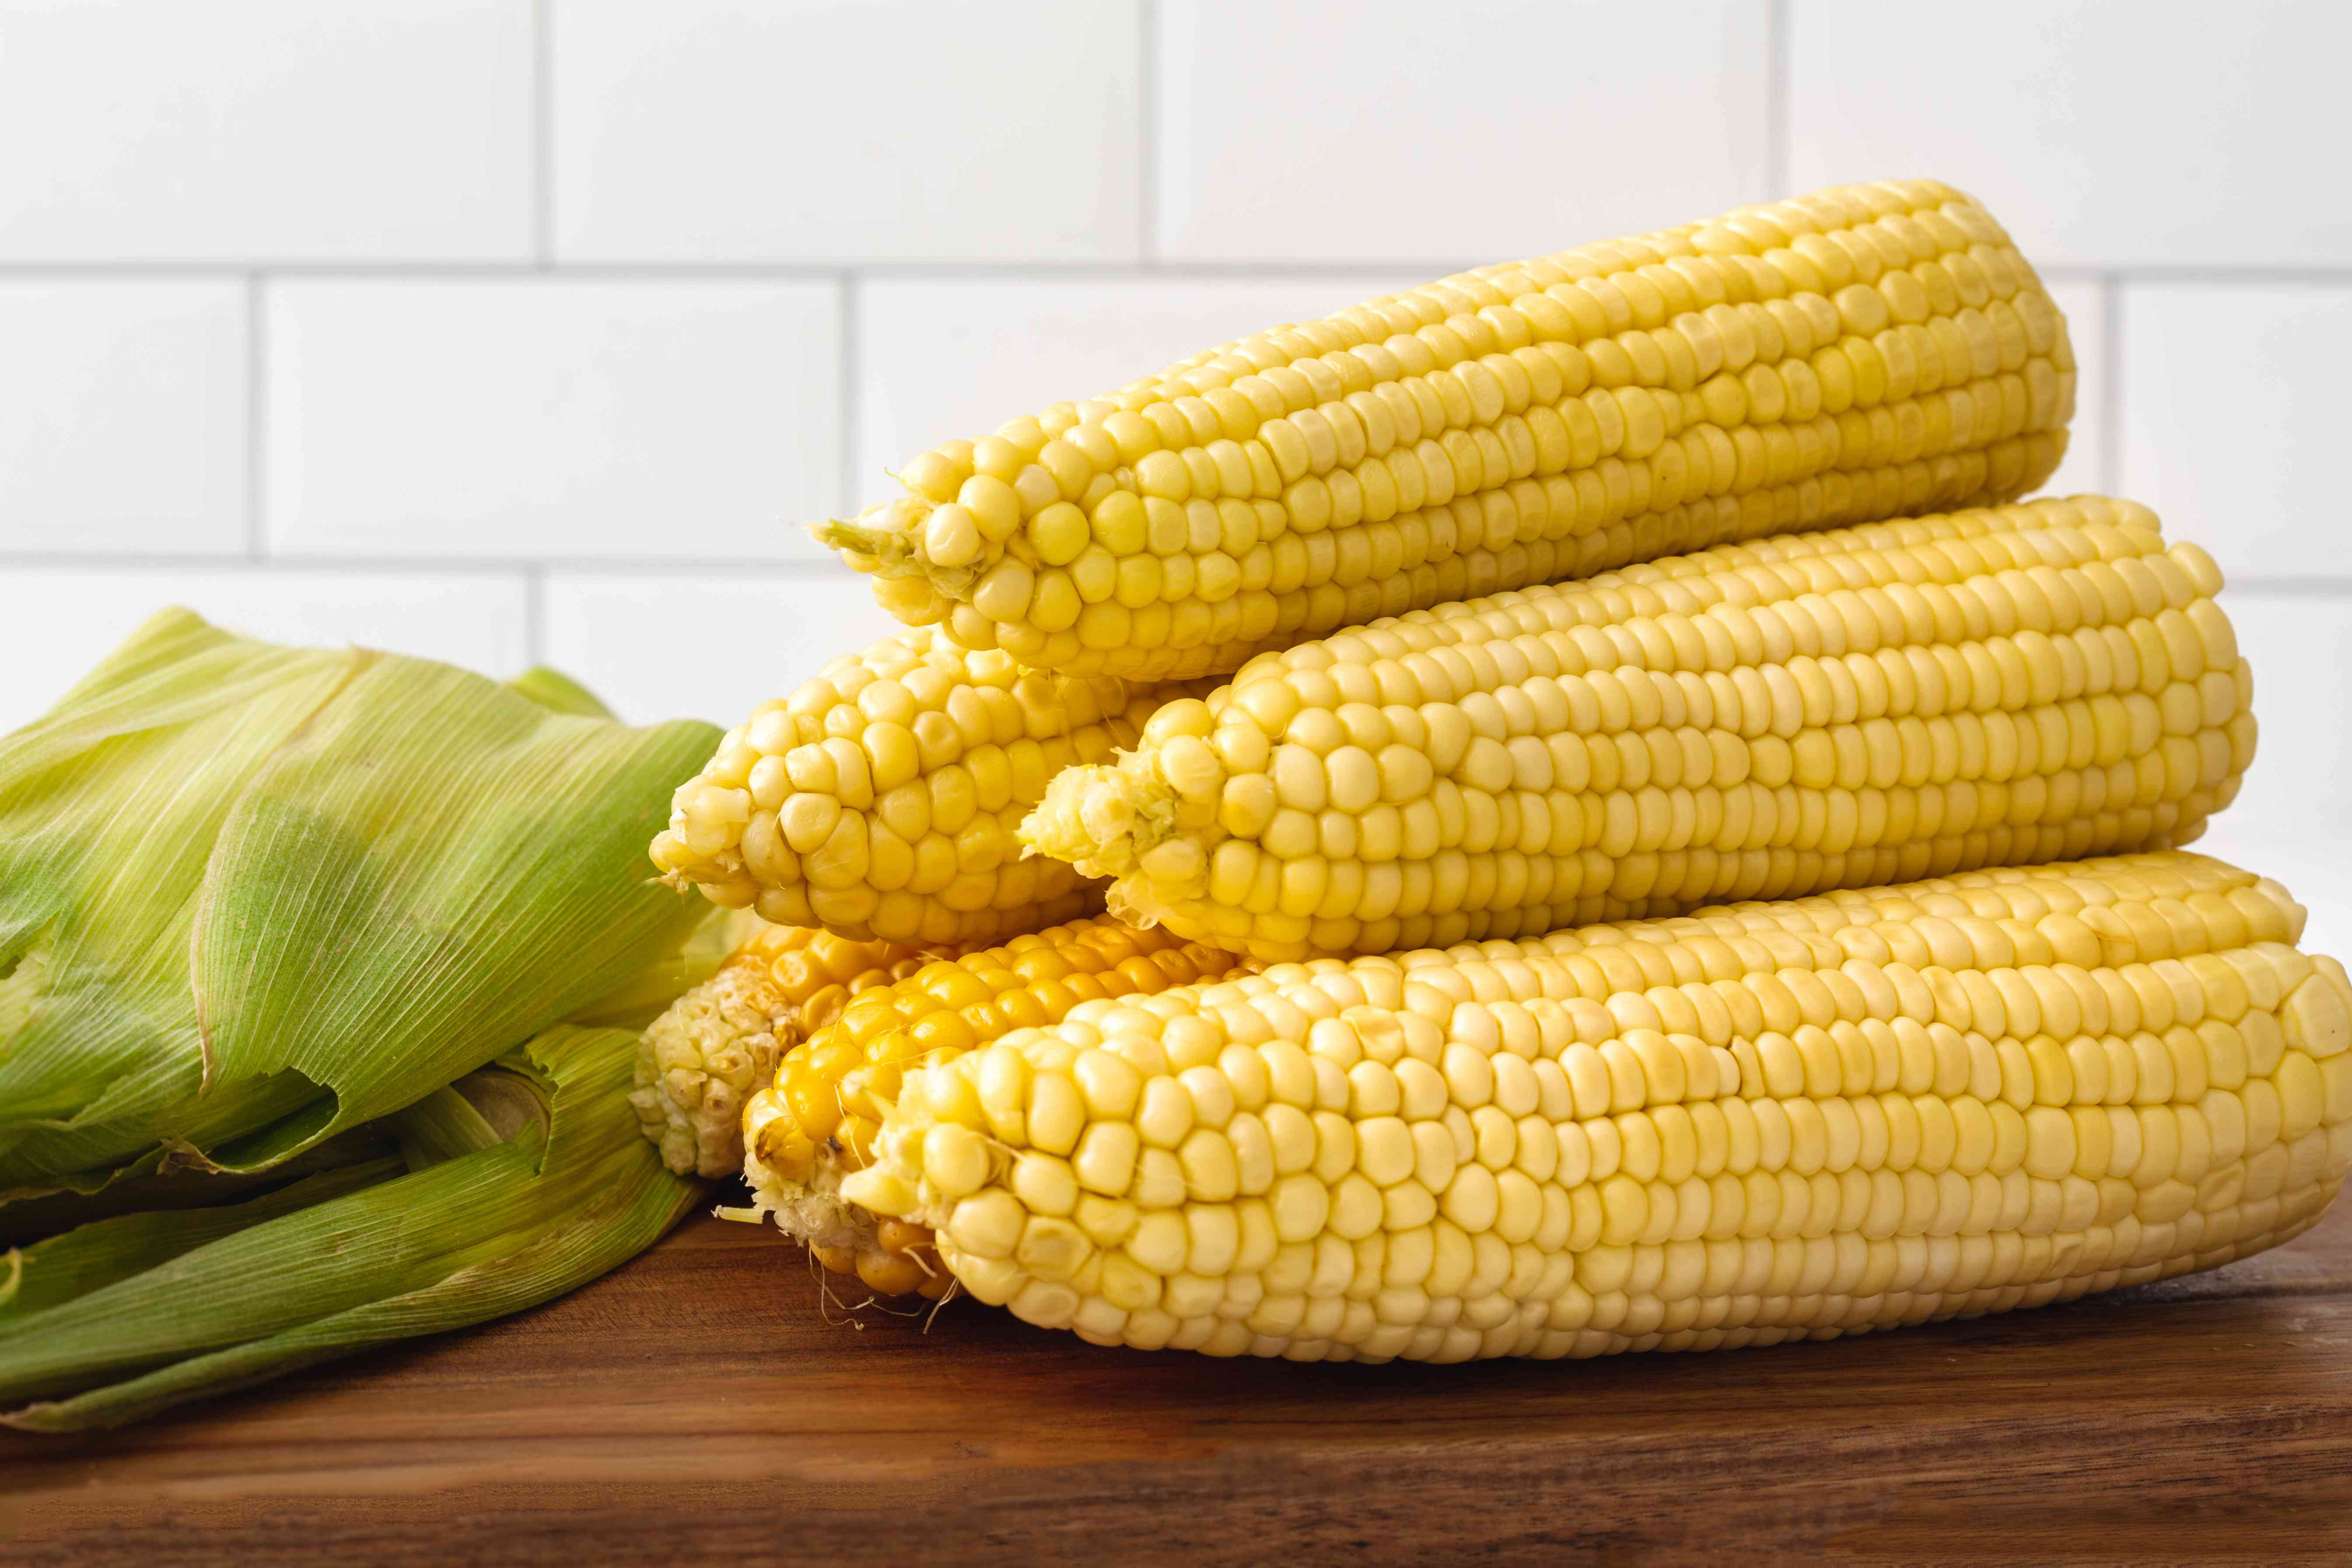 Stacked microwave corn on a cutting board.